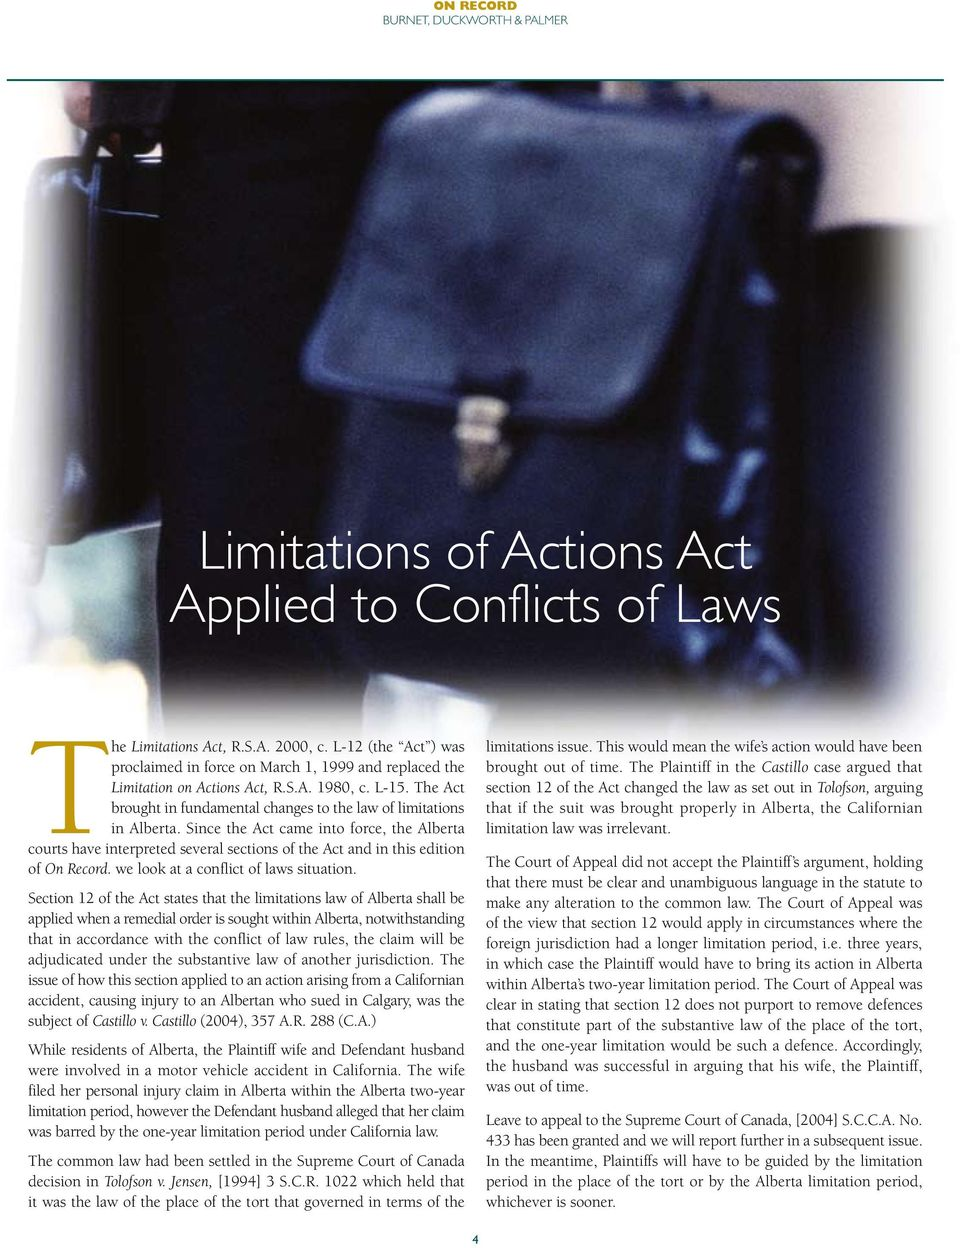 Since the Act came into force, the Alberta courts have interpreted several sections of the Act and in this edition of On Record. we look at a conflict of laws situation.